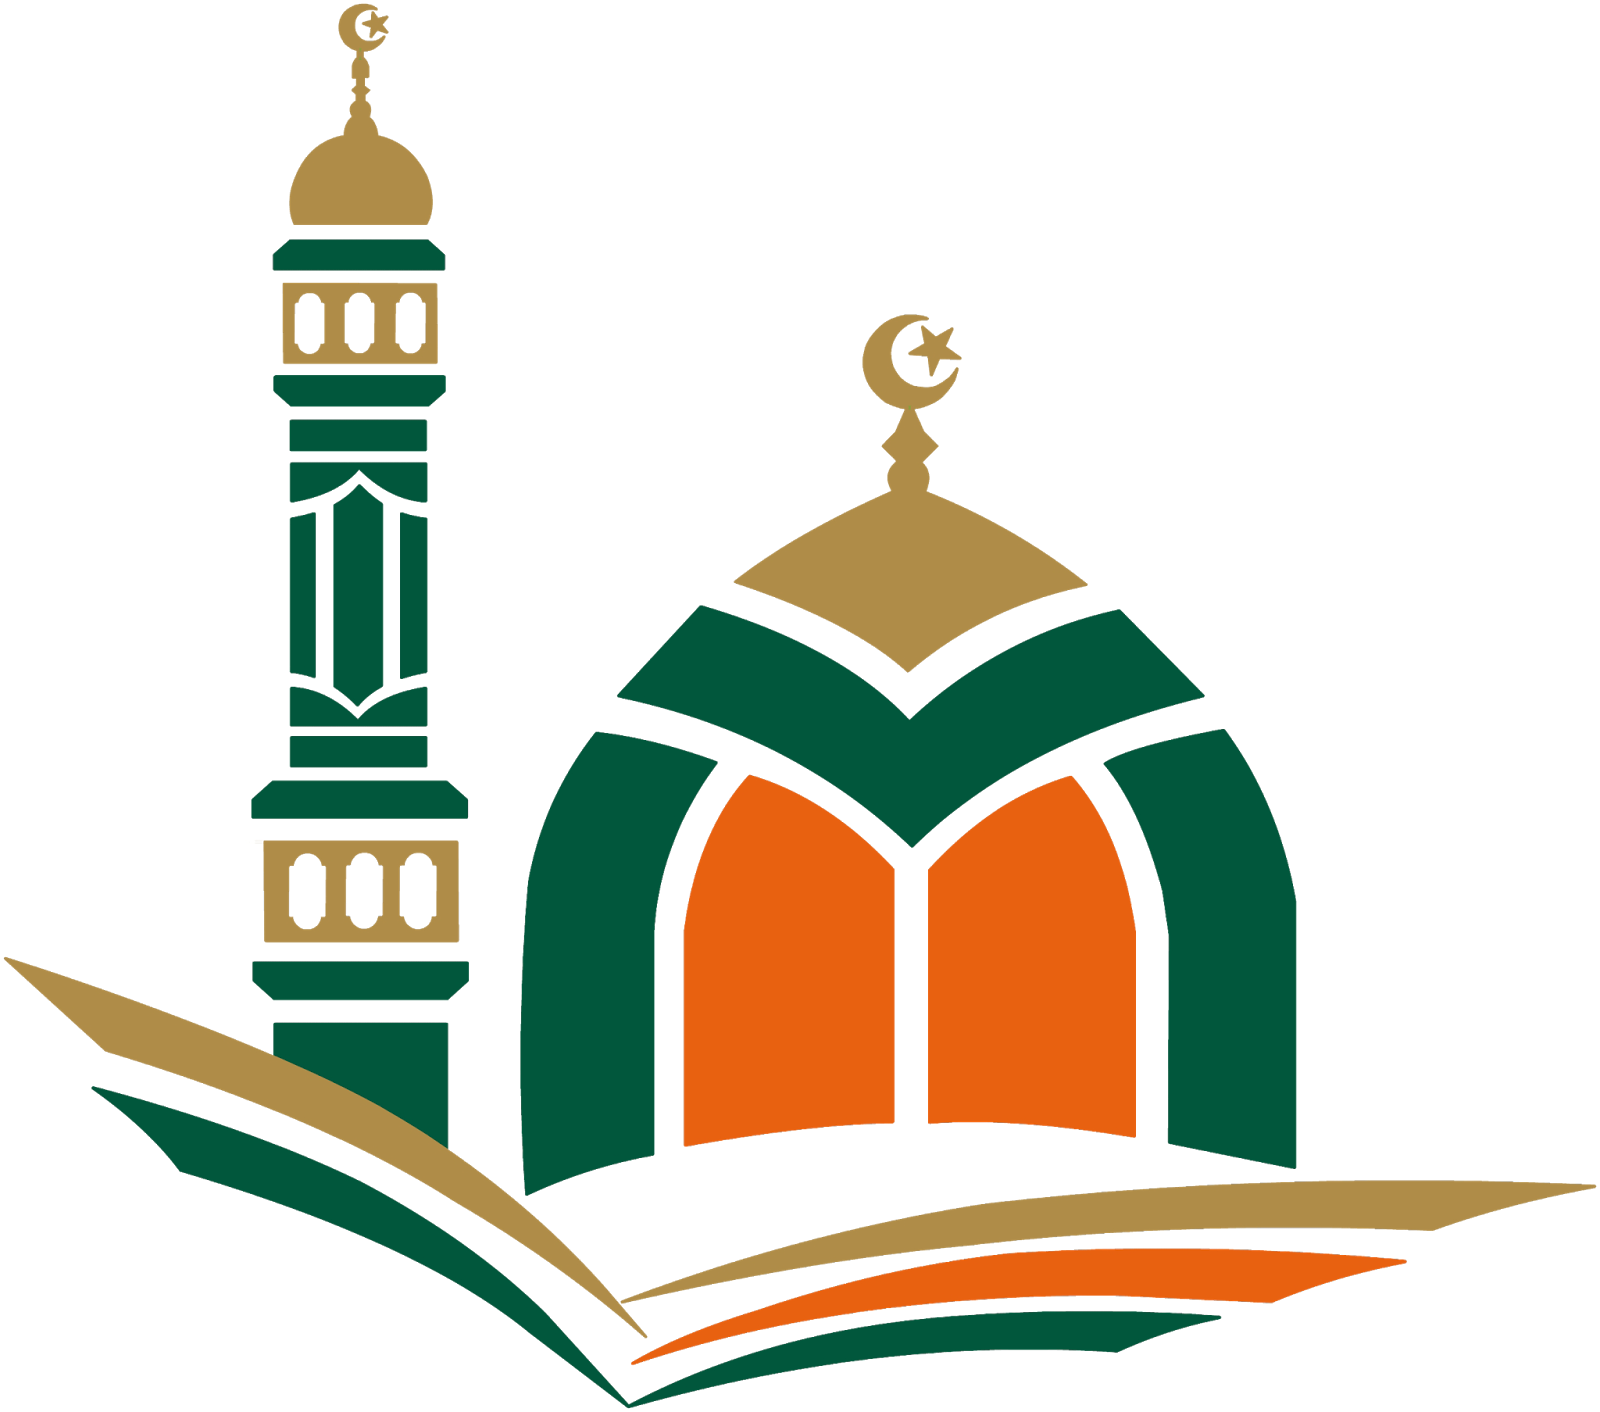 Free png images of worship. Quran islamic center north